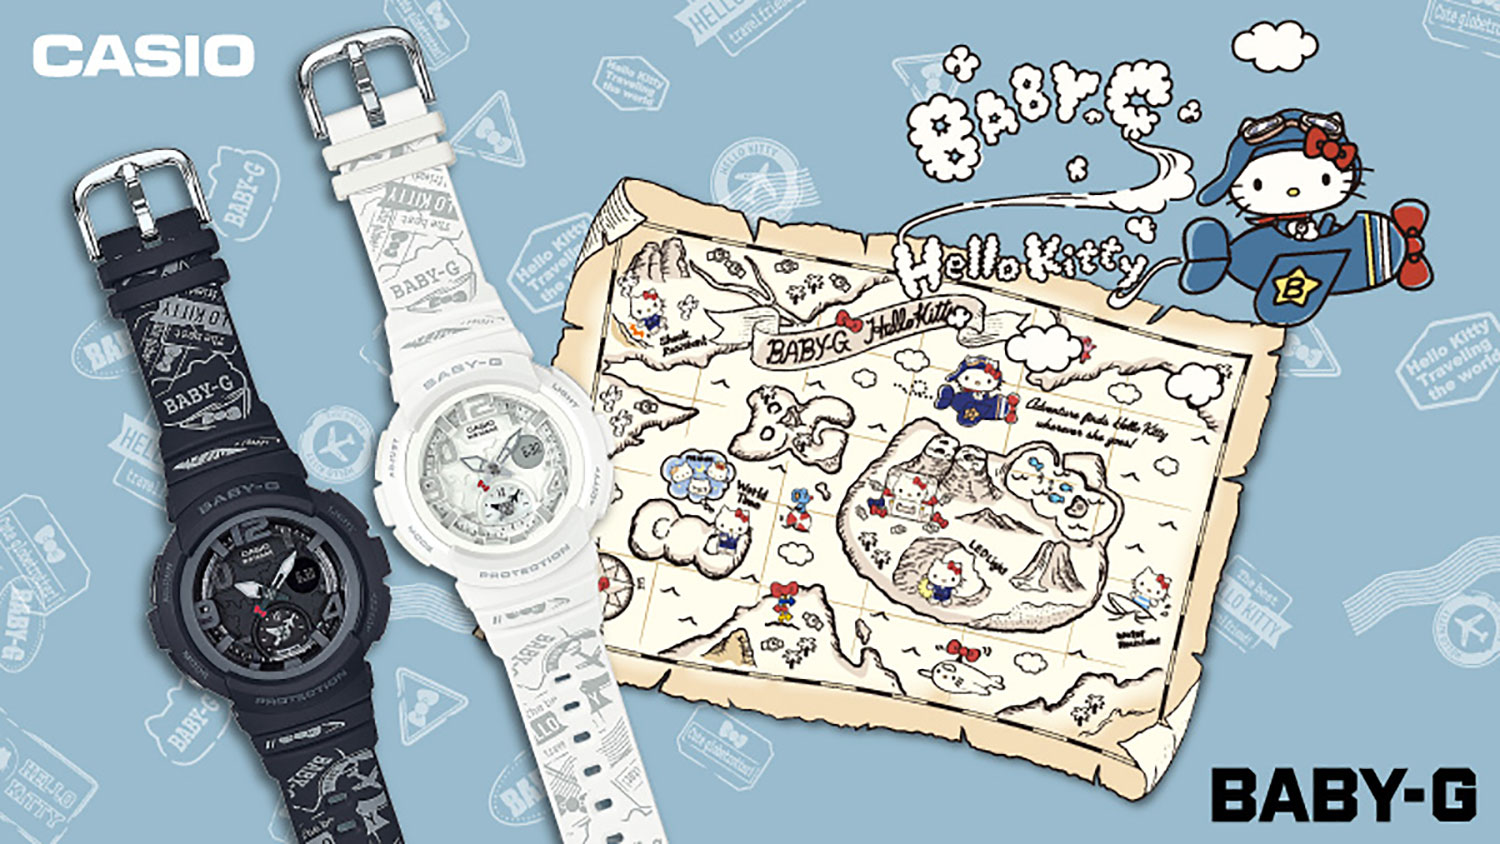 CASIO BABY-G Collaboration Model Featuring Globe-Trotting Hello Kitty